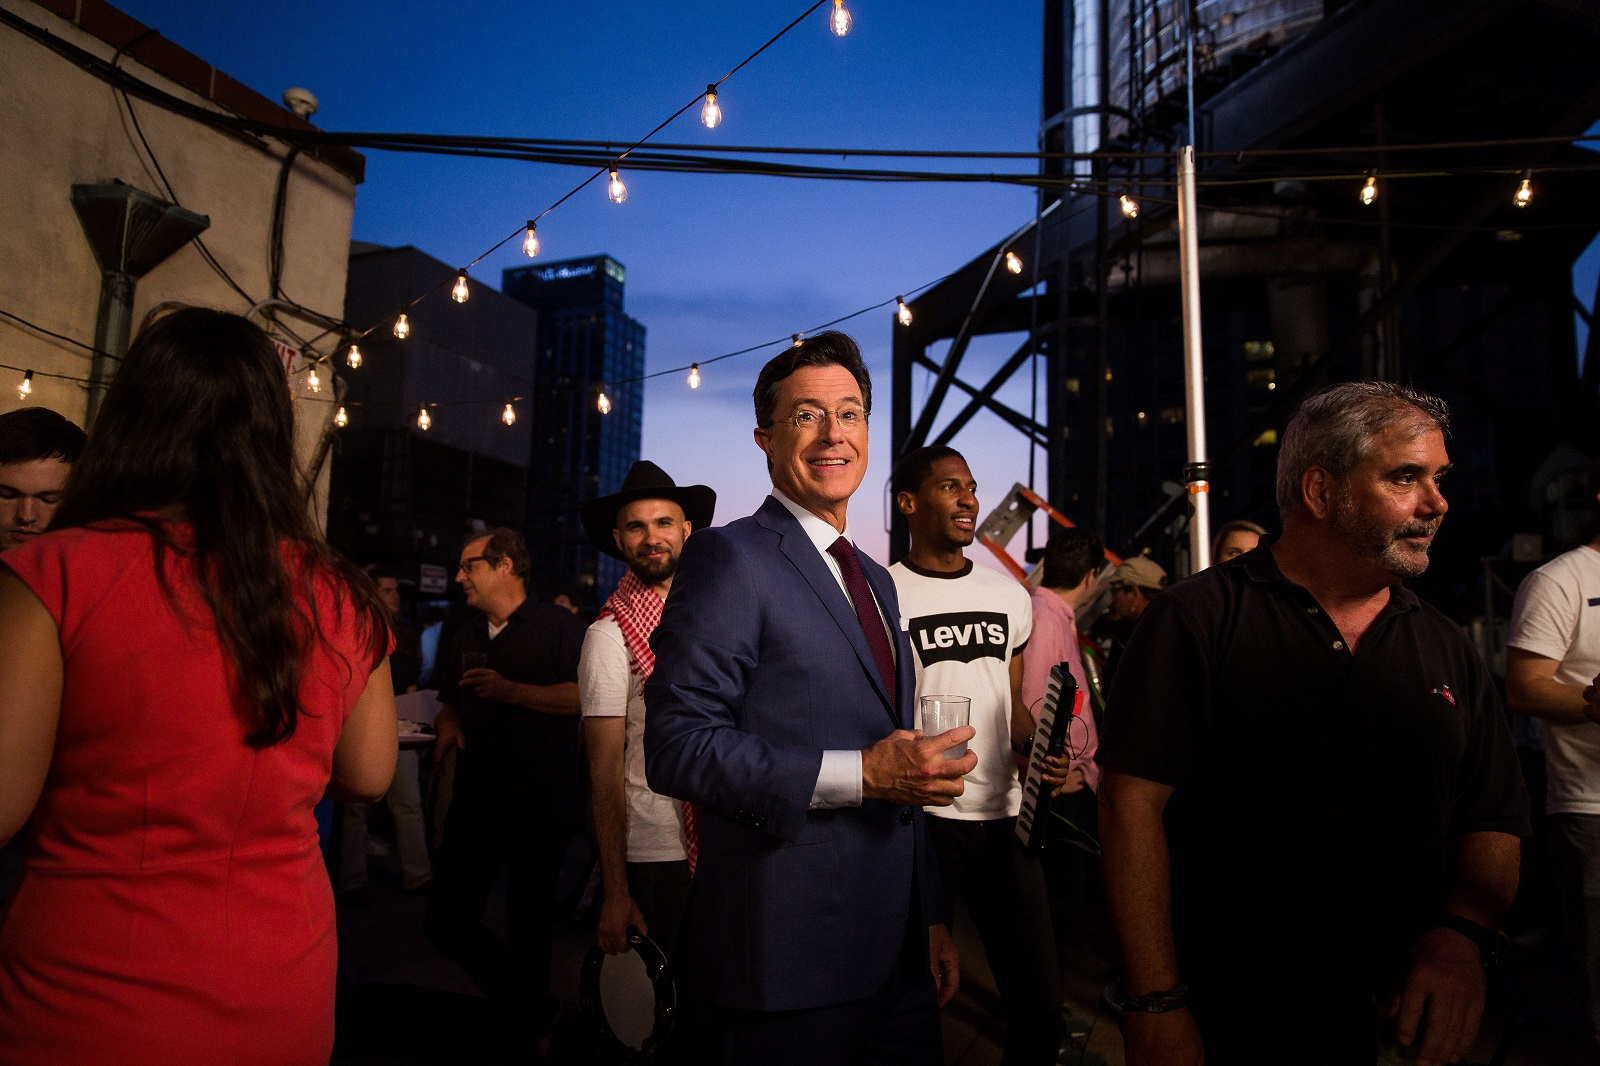 Stephen Colbert, here on the roof of the Ed Sullivan Theater in Manhattan, is a ratings winner in Western New York. (Damon Winter/The New York Times)